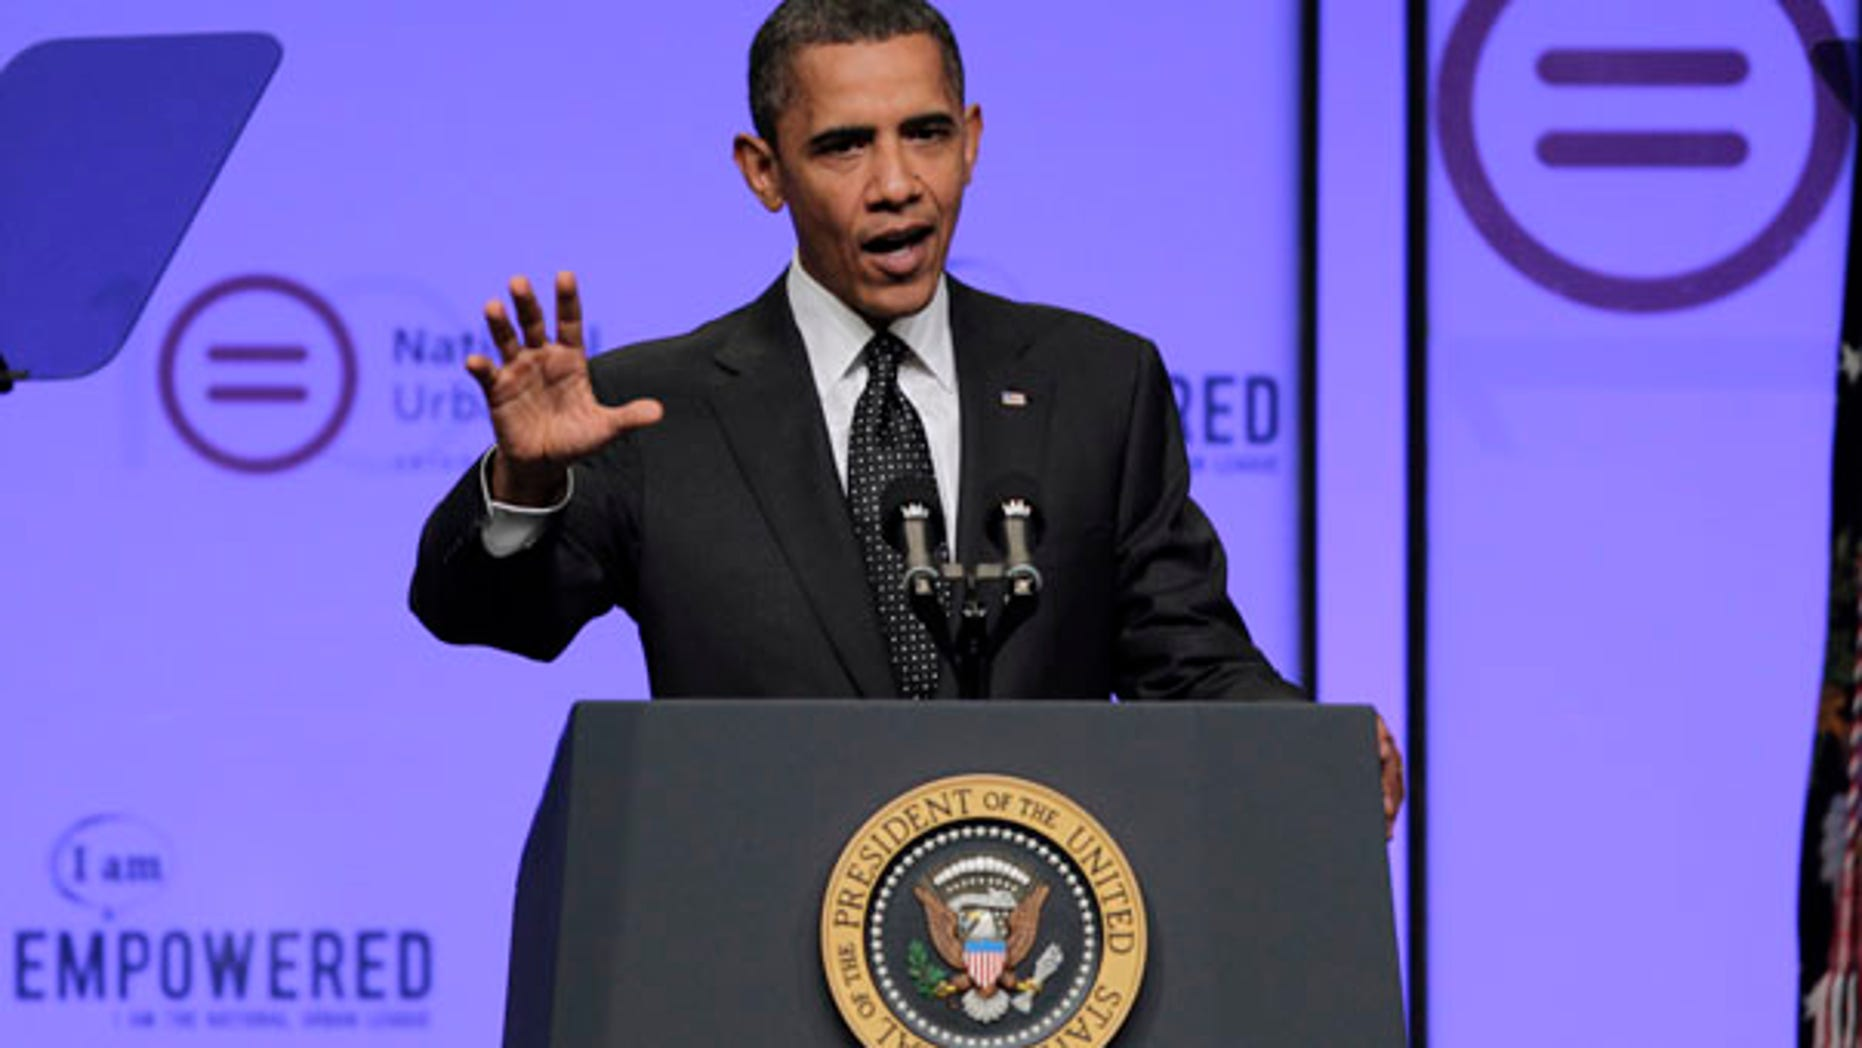 """President Barack Obama highlights his """"Race to the Top"""" education agenda in a speech to the National Urban League conference in Washington, Thursday, July 29, 2010. (AP Photo/J. Scott Applewhite)"""